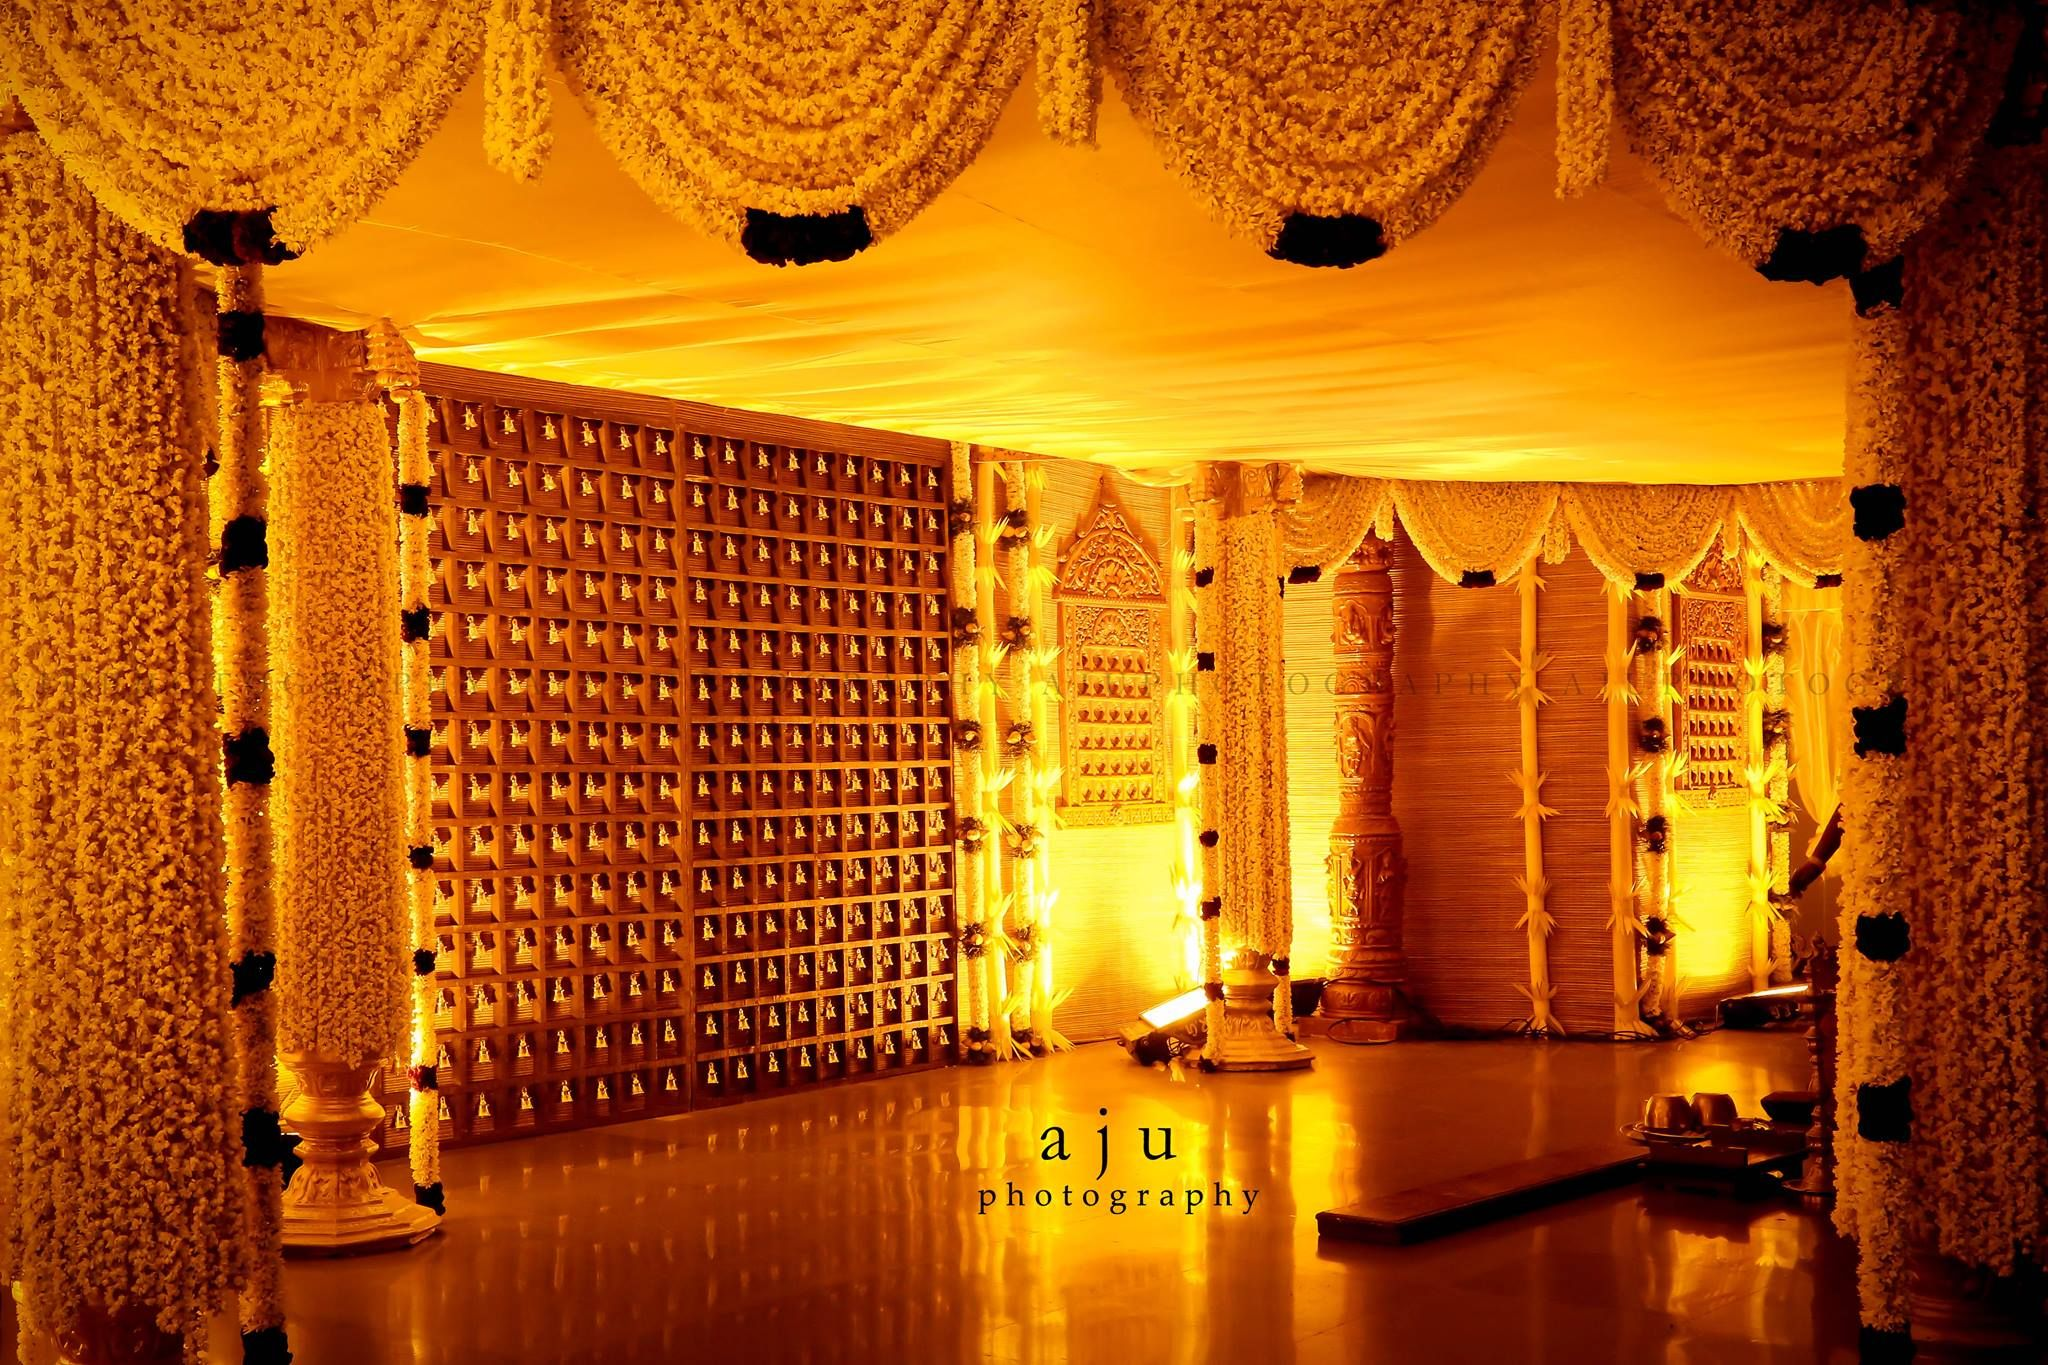 Aju photography indian wedding decorators pinterest for Backdrops for stage decoration